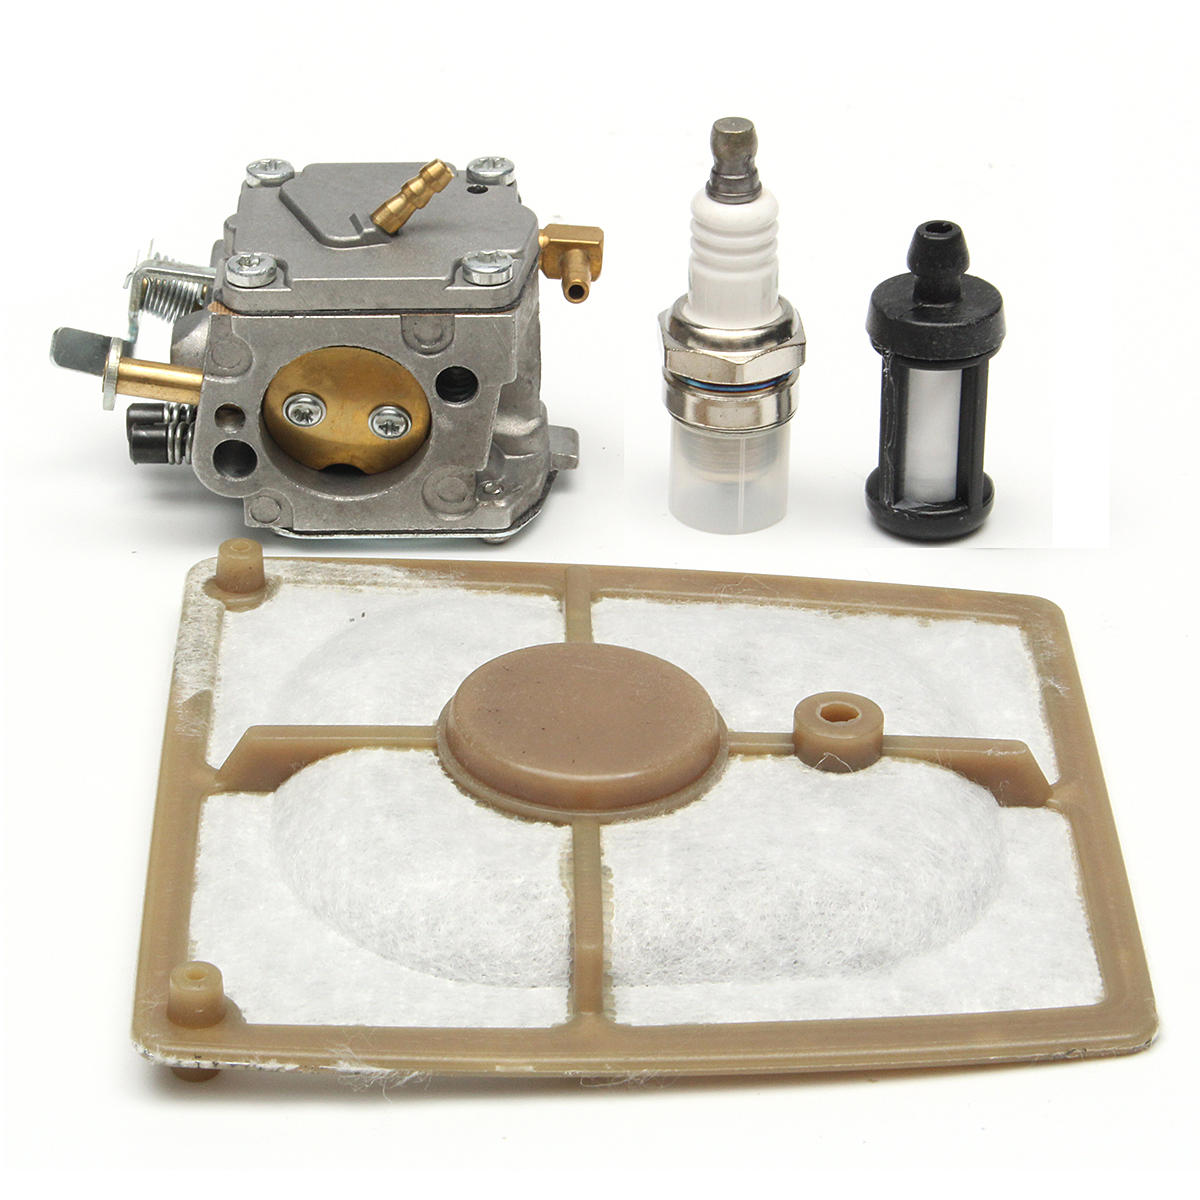 hight resolution of chain saw carburetor air fuel filter kit for stihl 041 041 farm boss gas carb